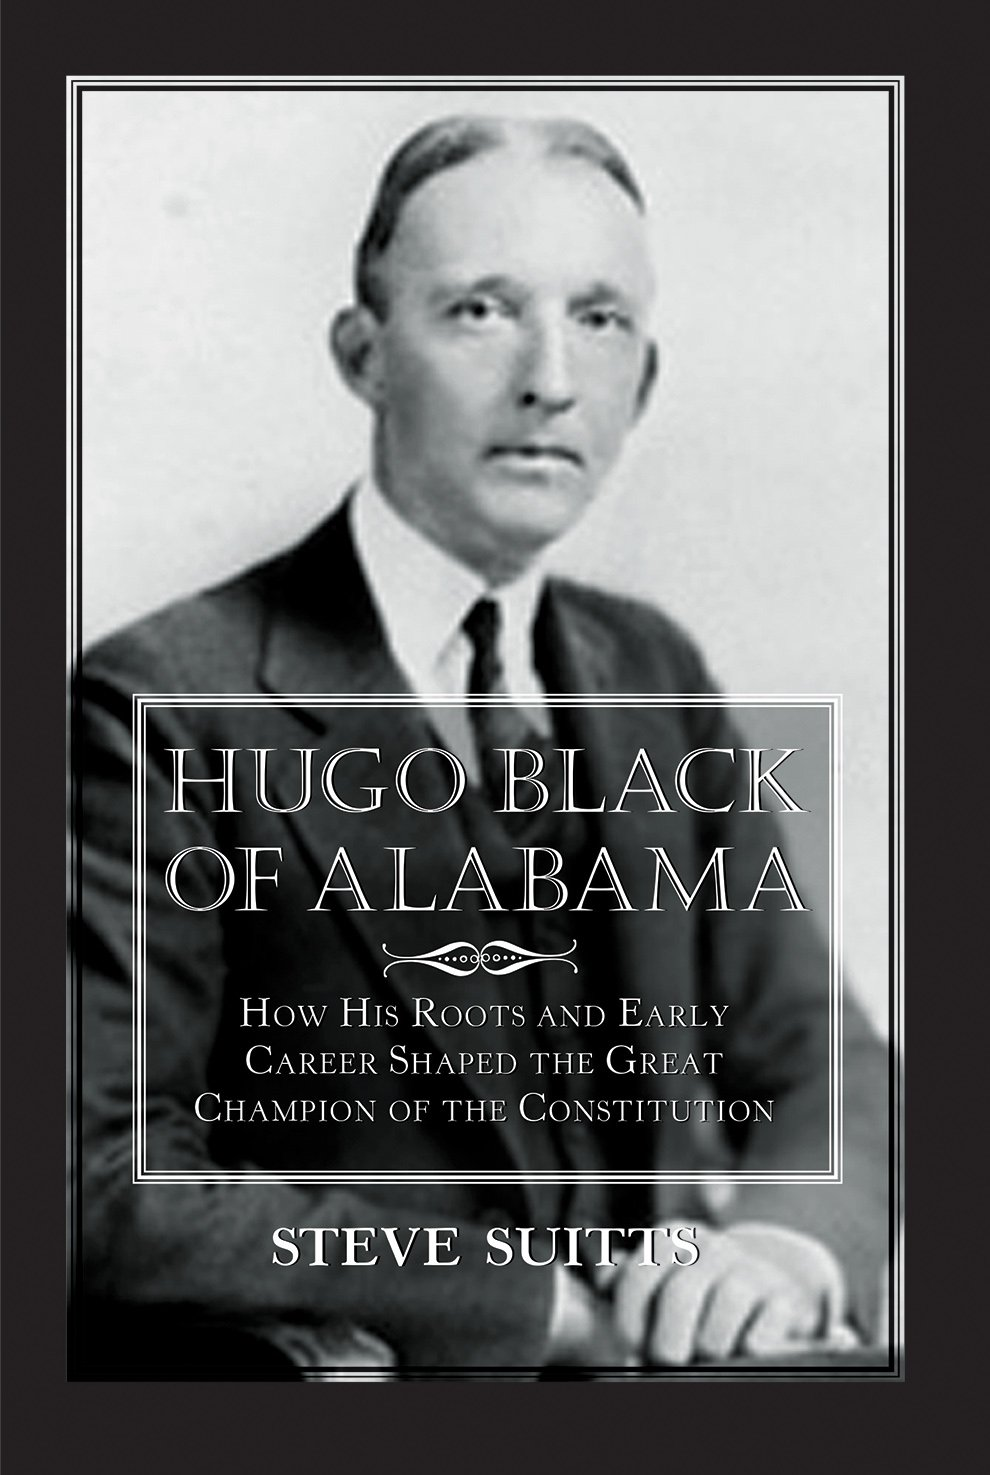 Download Hugo Black of Alabama: How His Roots and Early Career Shaped the Great Champion of the Constitution PDF